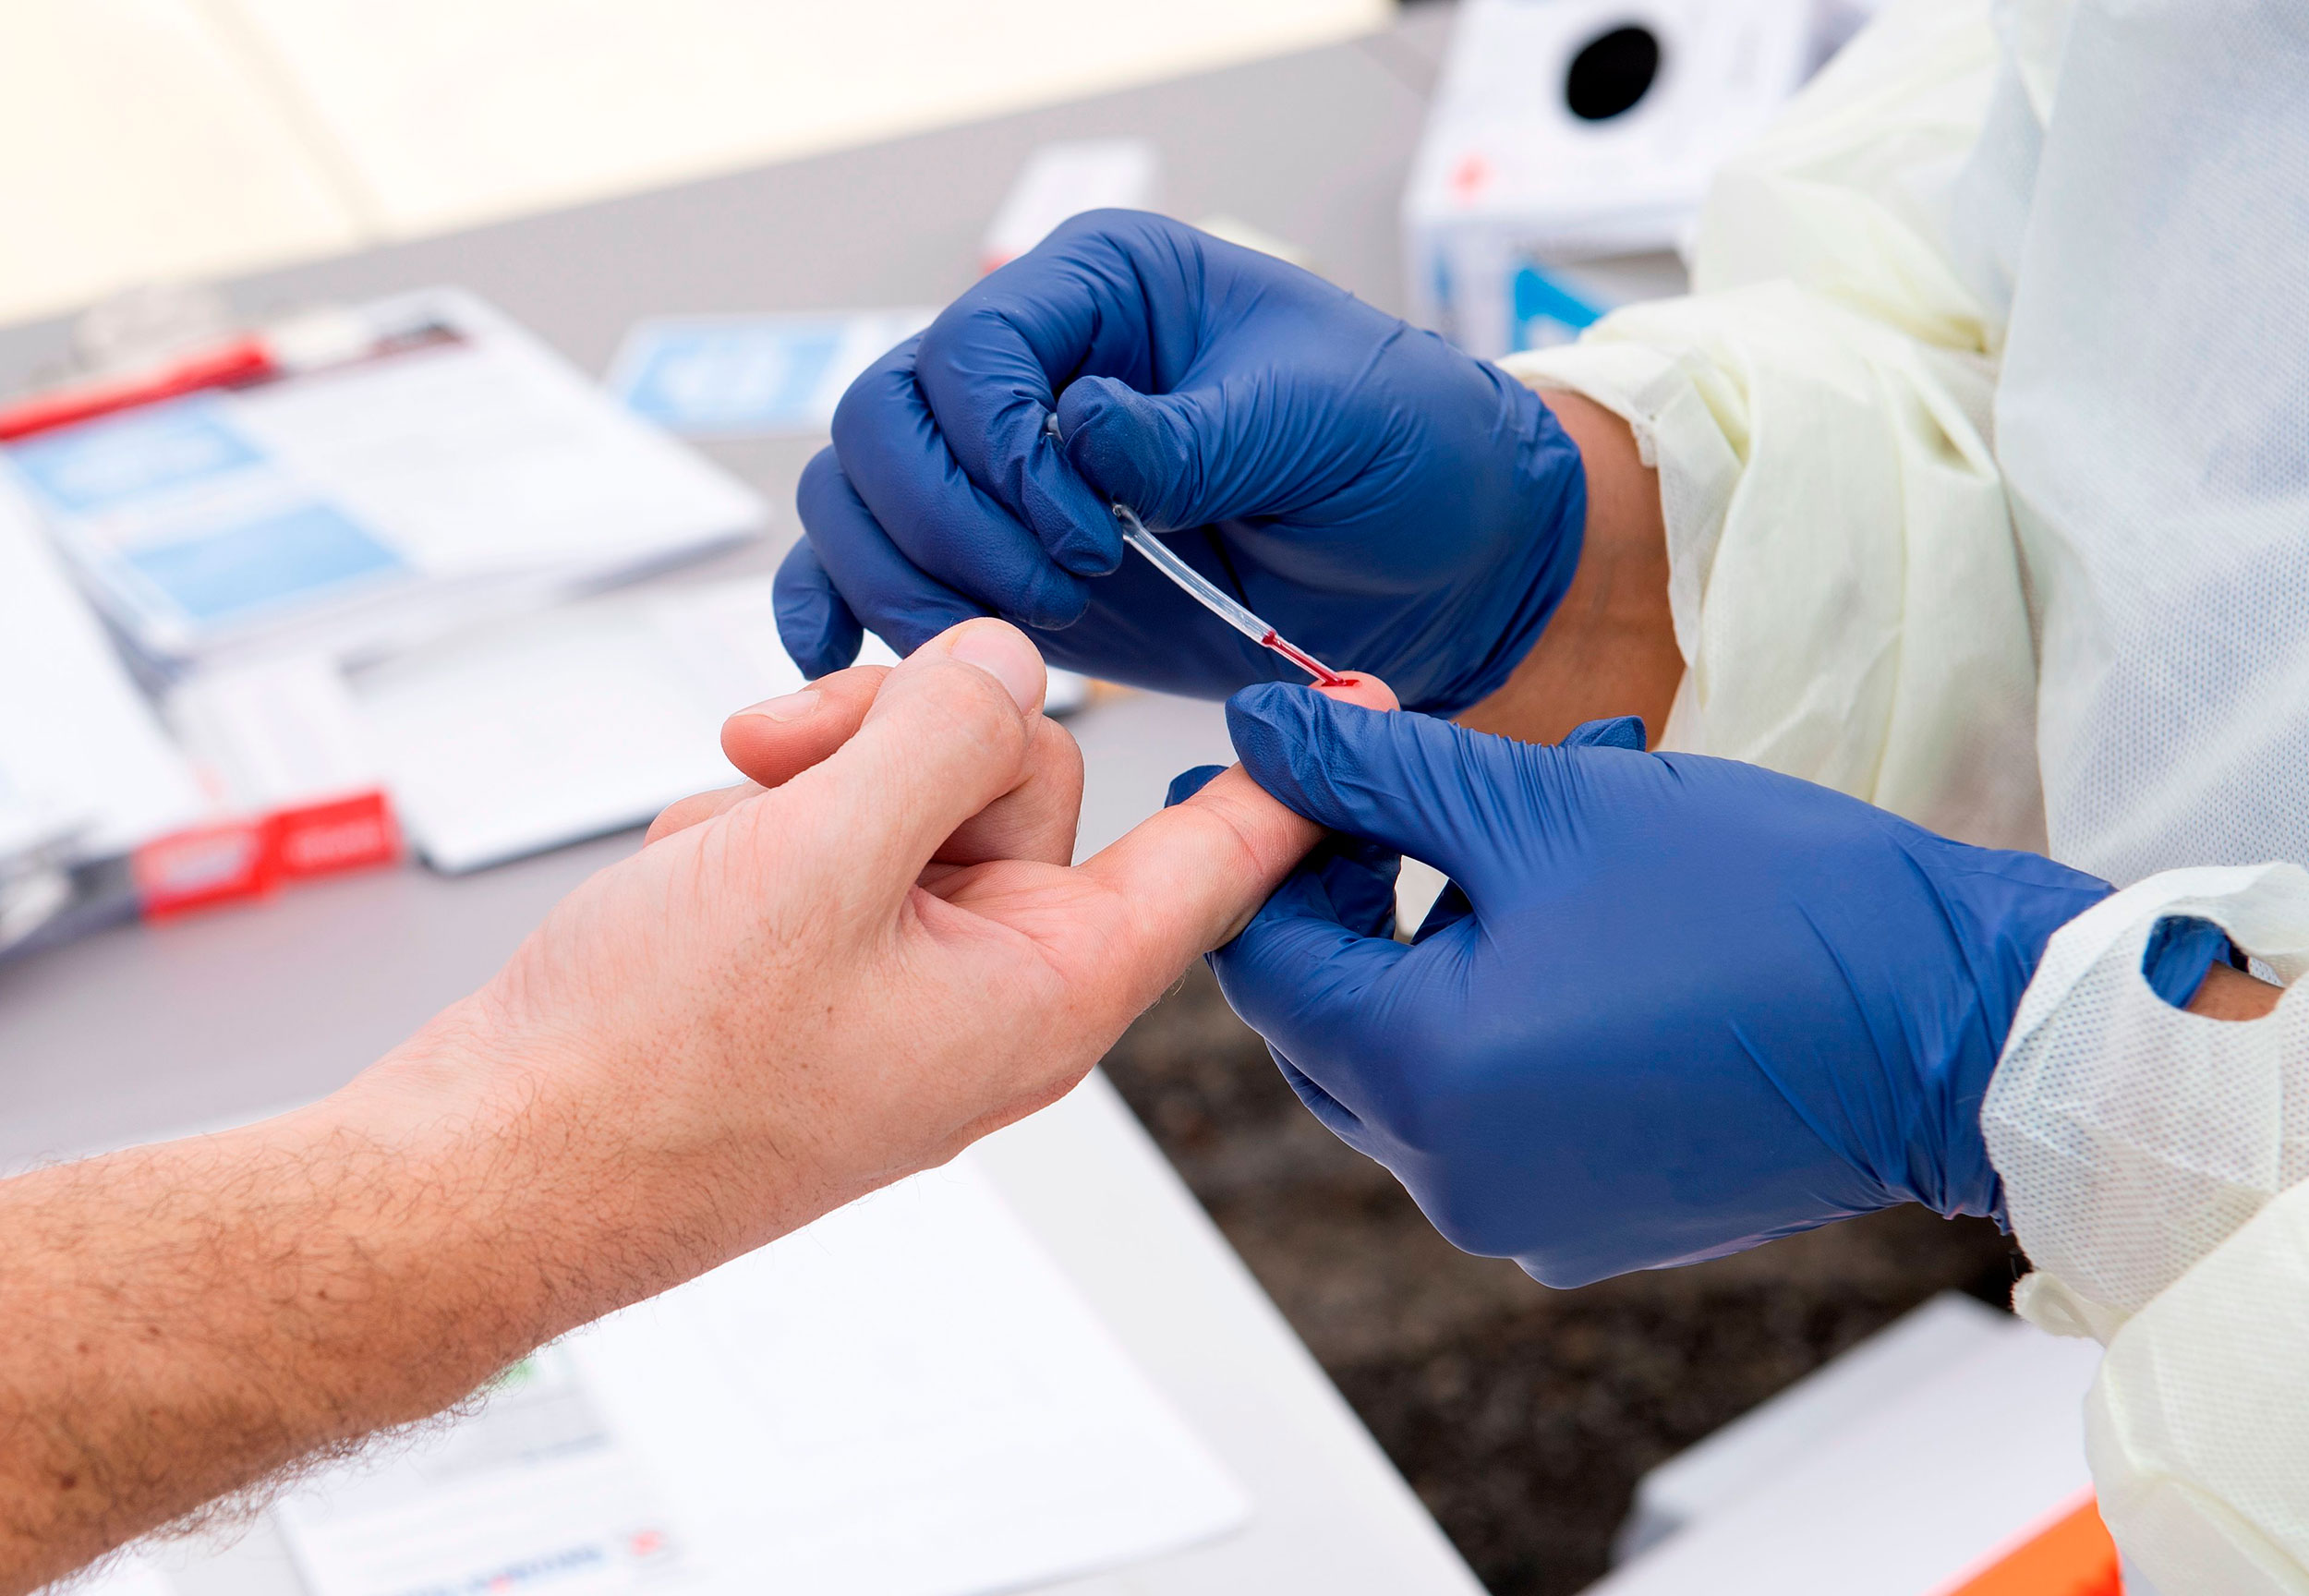 A health worker takes a drop of blood for a Covid-19 antibody test at the Diagnostic and Wellness Center in Torrance, California, on May 5, 2020.